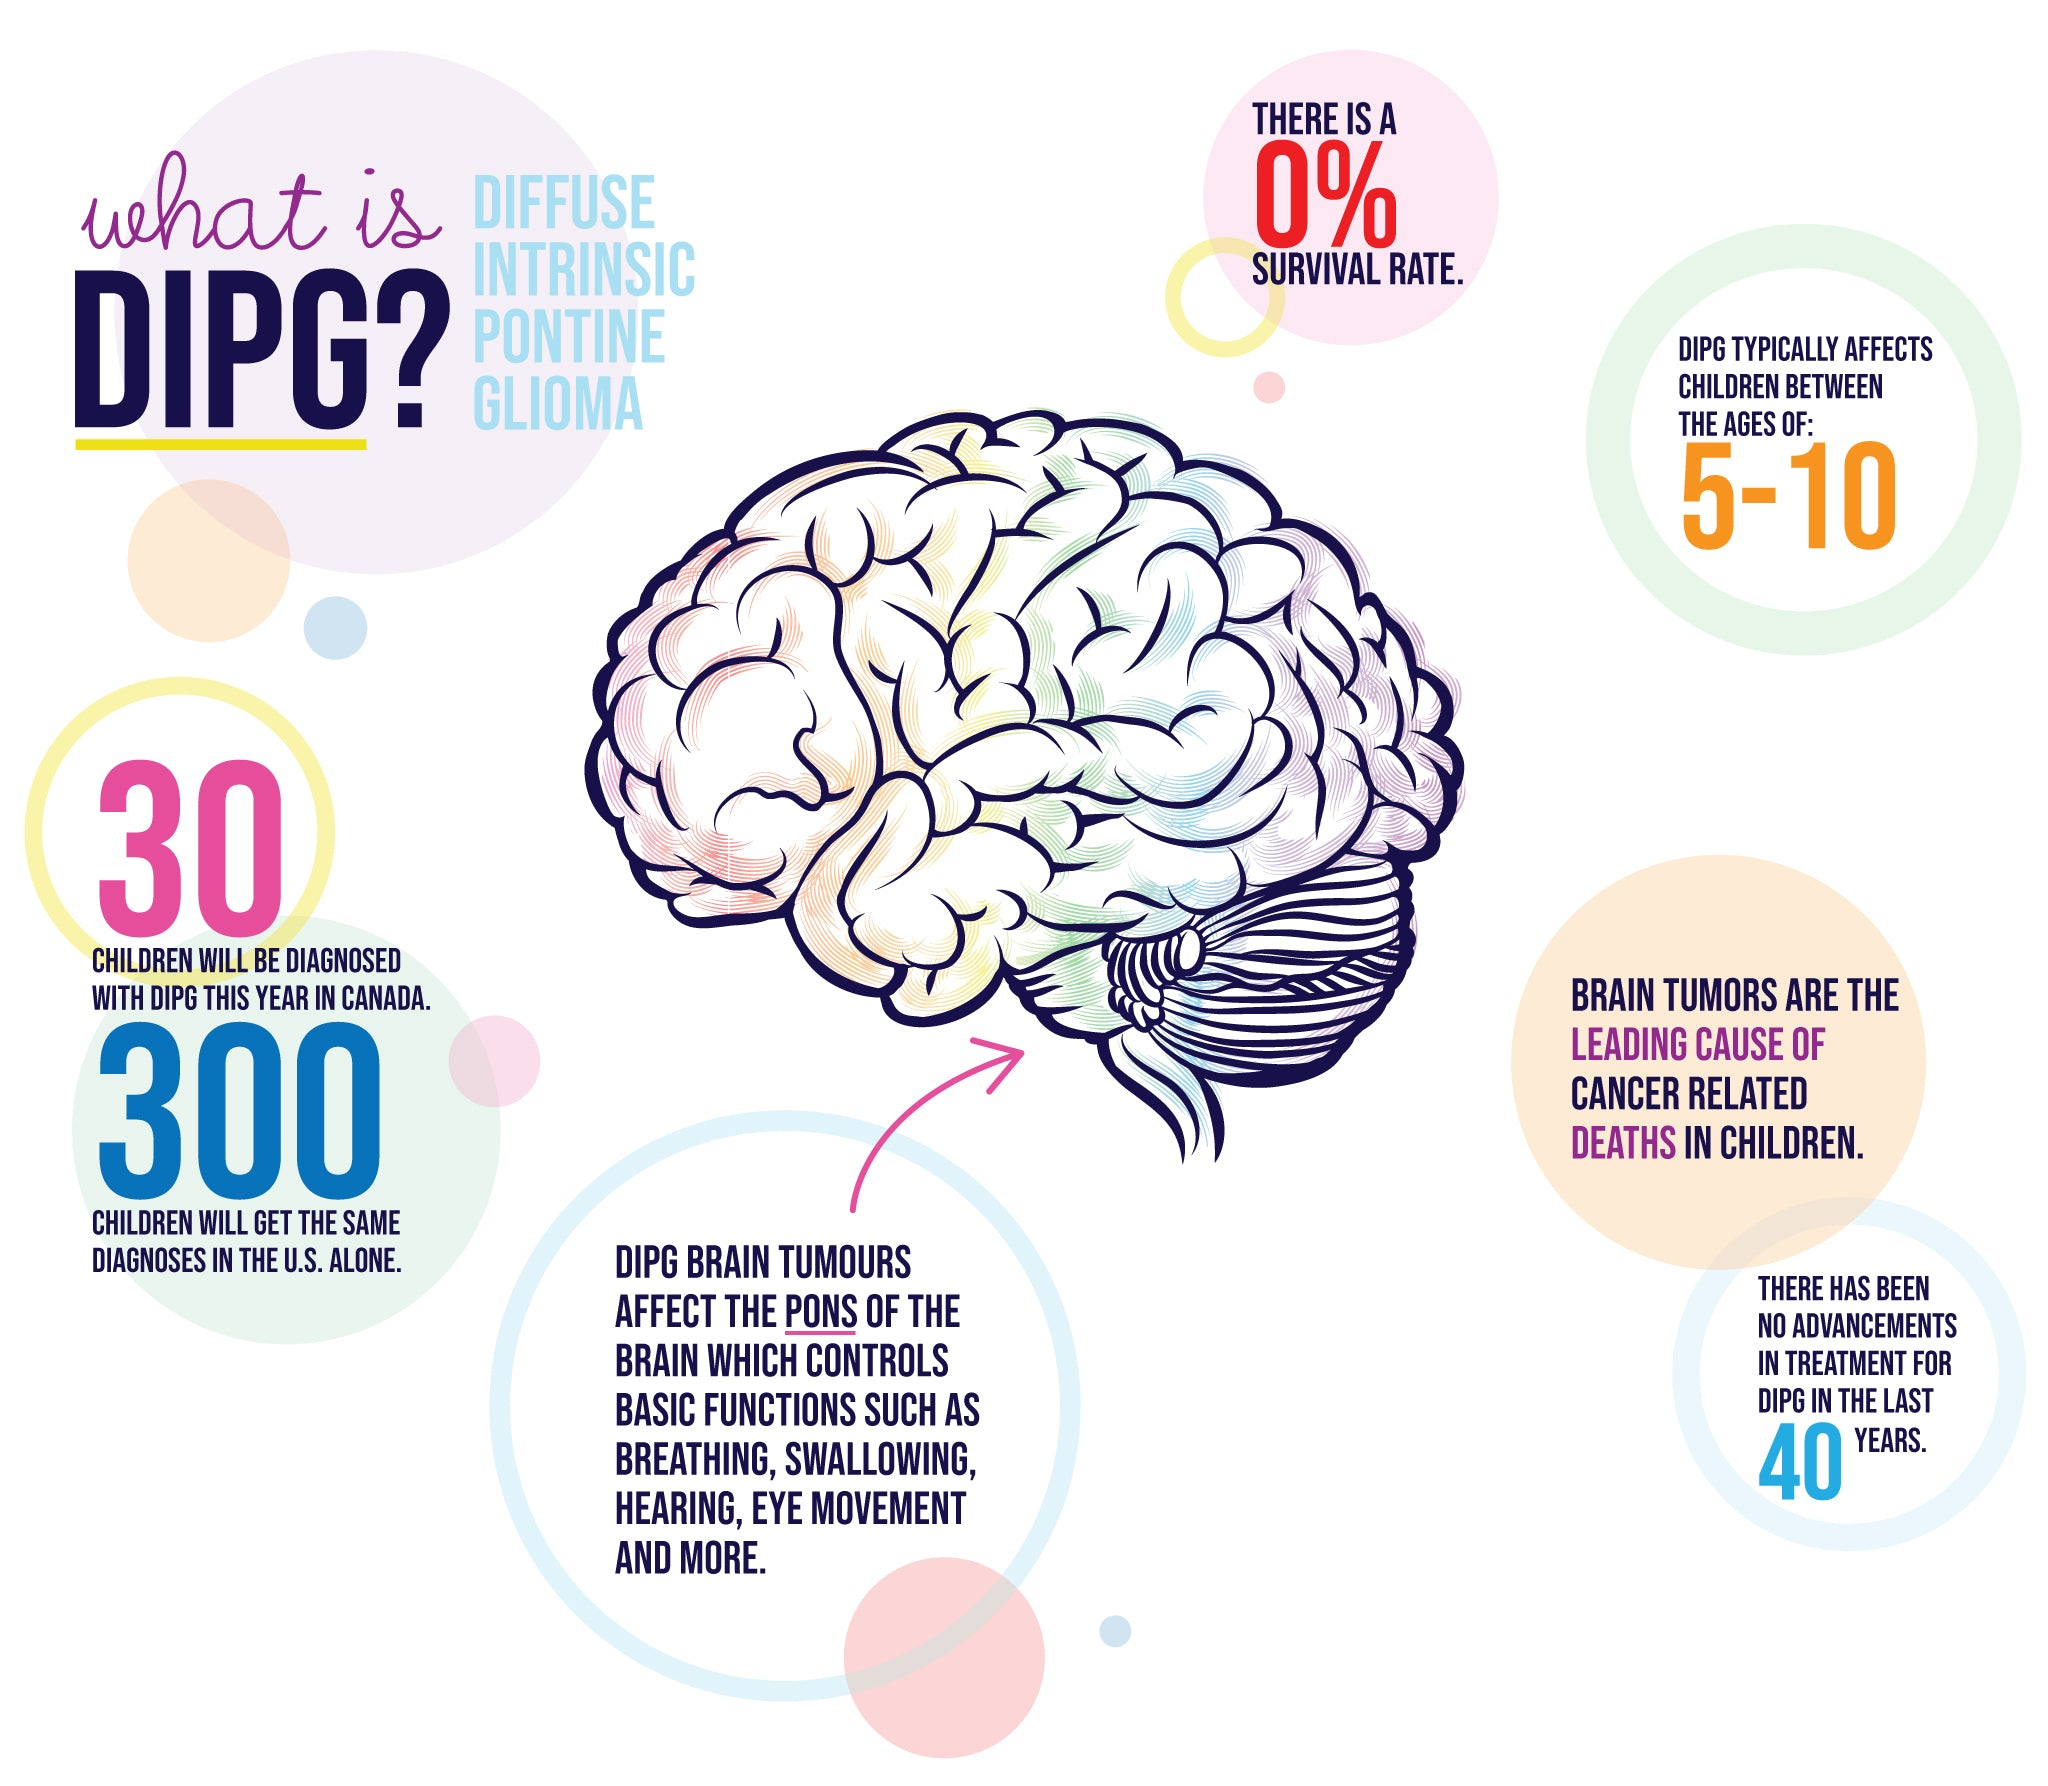 infographic explaining DIPG - Diffuse Intrinsic Pontine Glioma, a form of childhood brain cancer with no cure